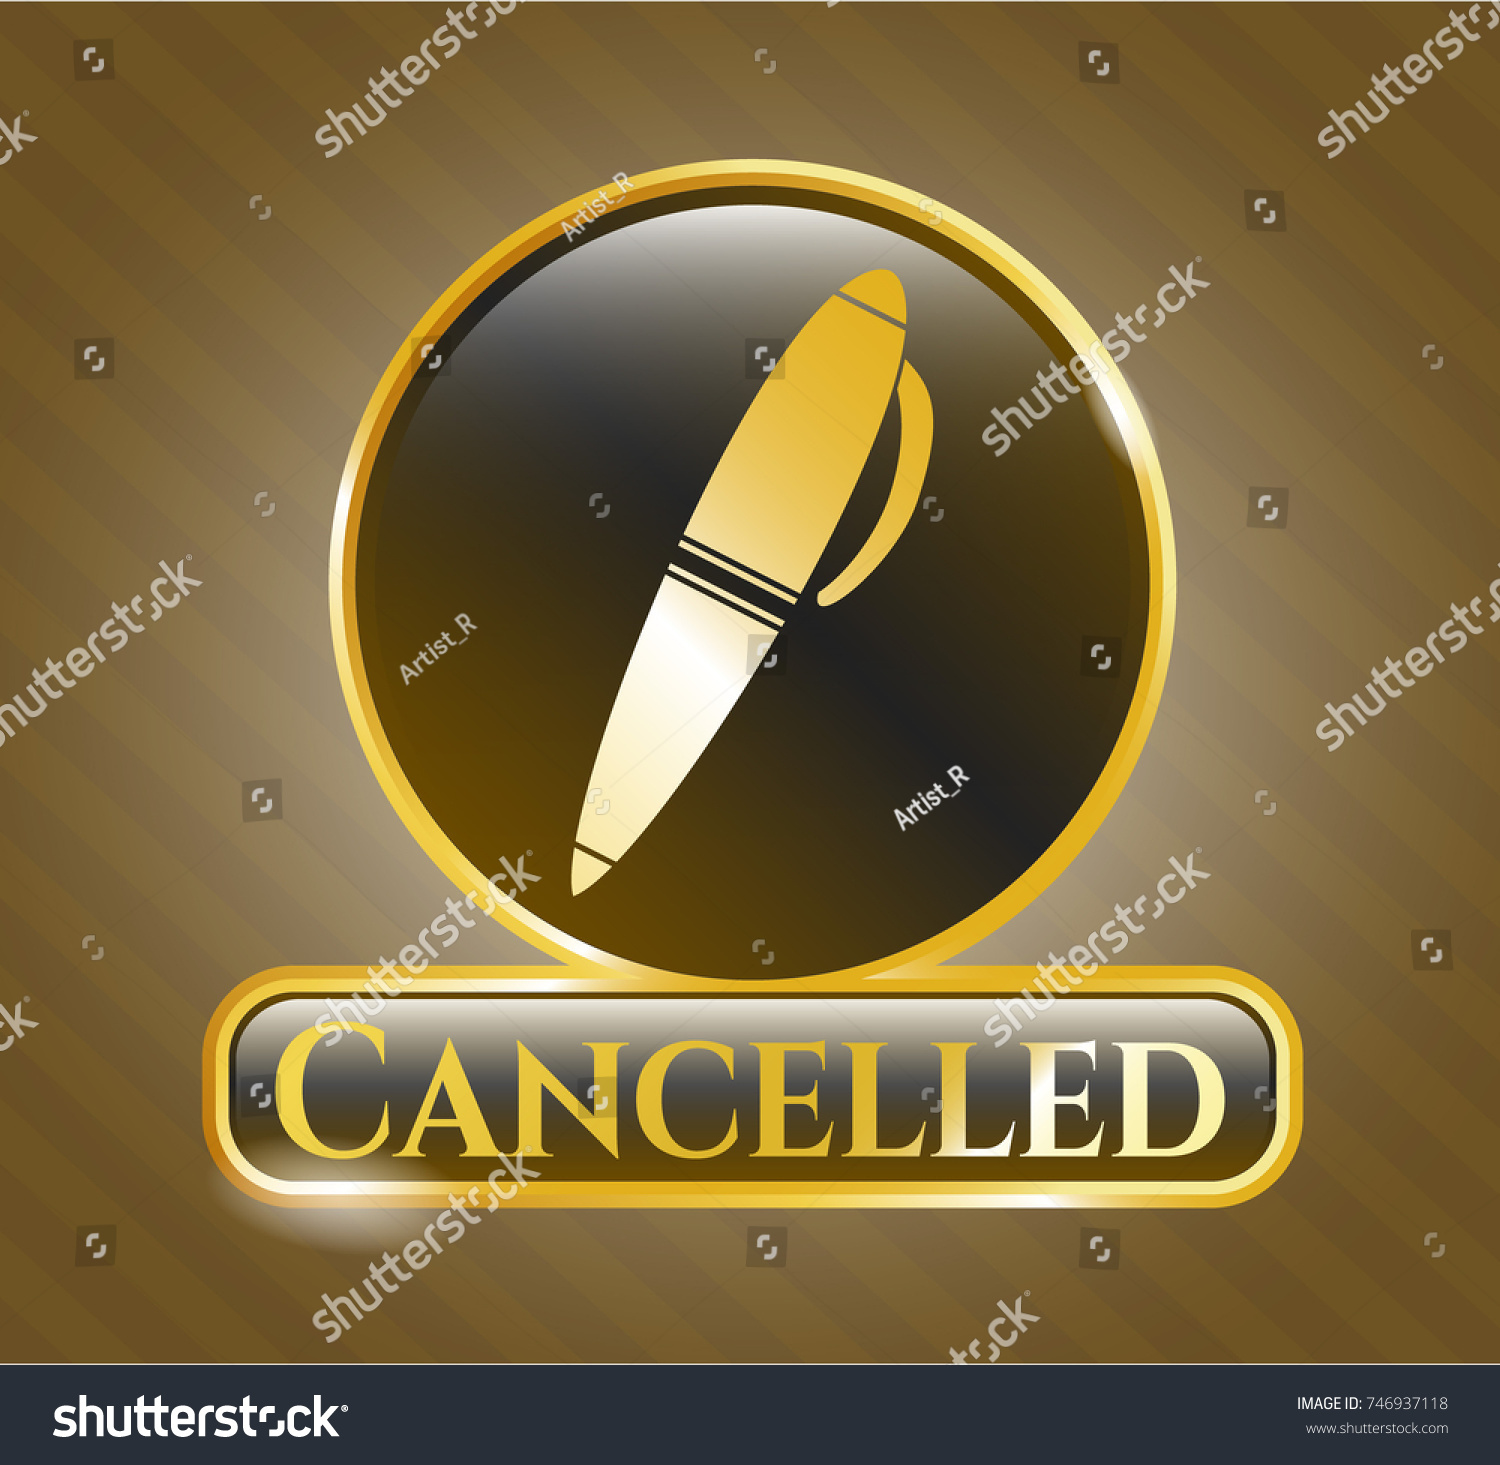 Gold emblem pen icon cancelled text stock vector 746937118 gold emblem with pen icon and cancelled text inside biocorpaavc Choice Image